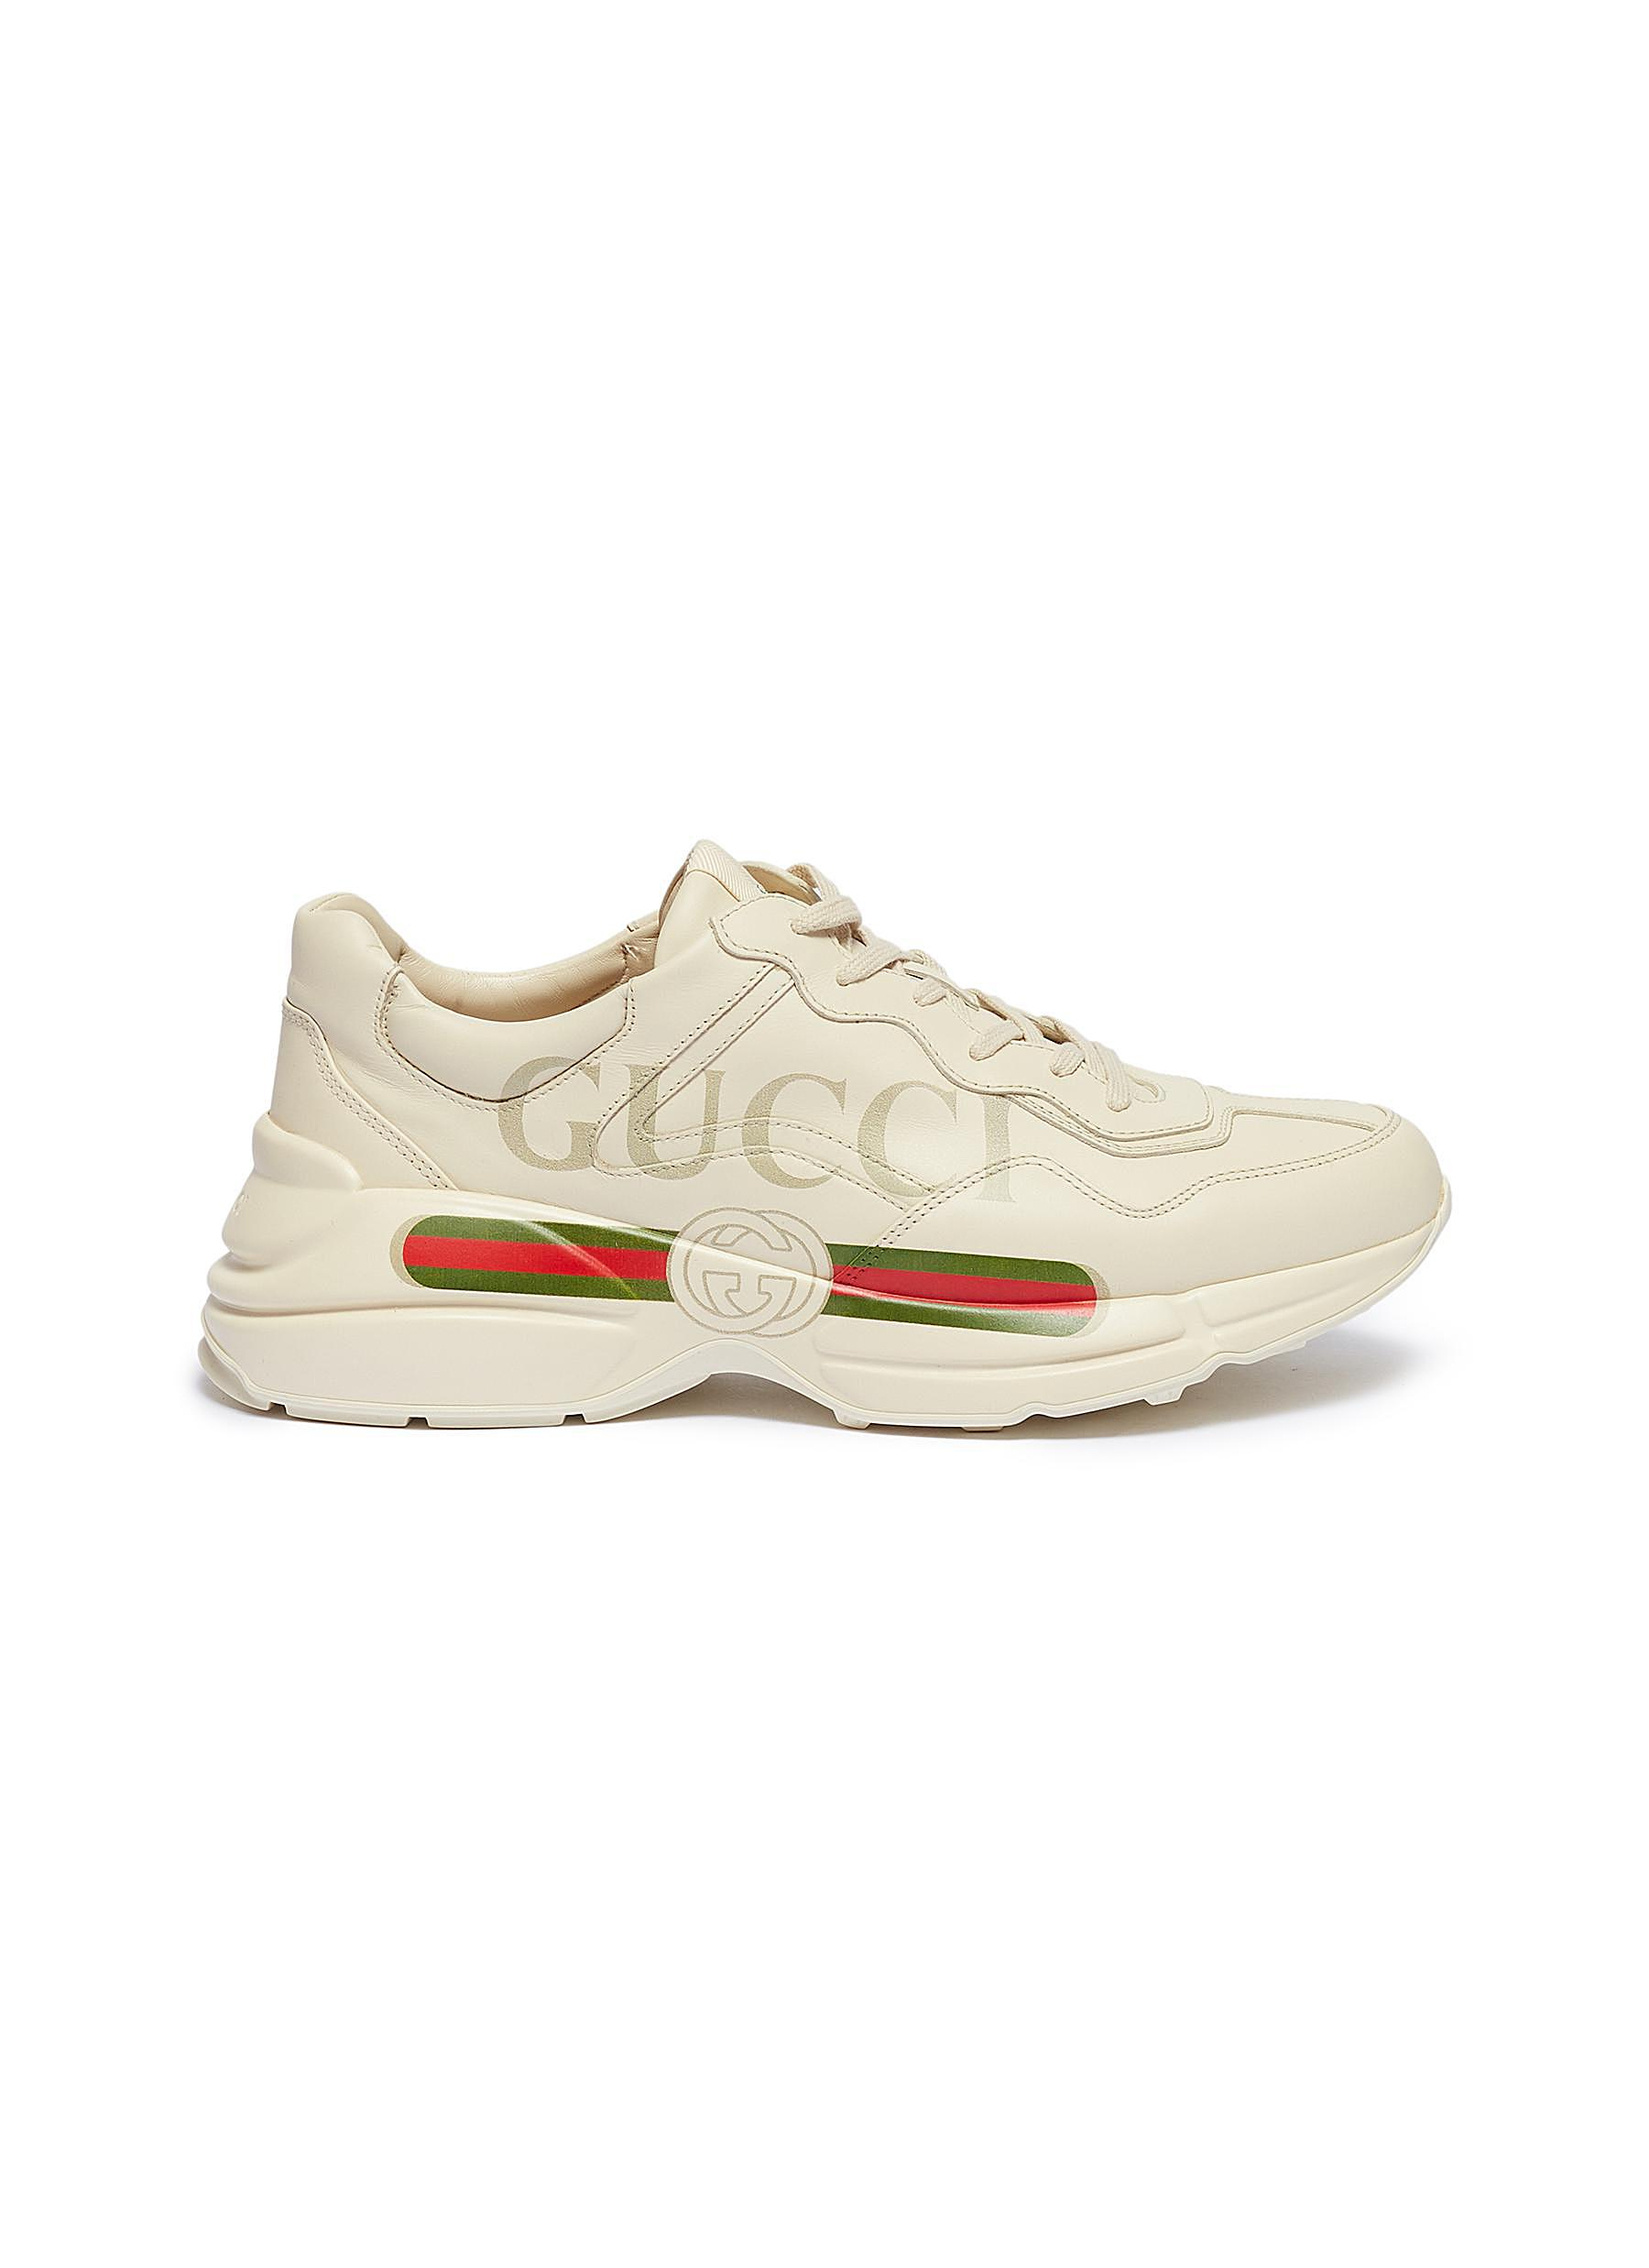 ddc3b5fb083 Gucci.  Rhyton  logo print leather sneakers. Style 221137674